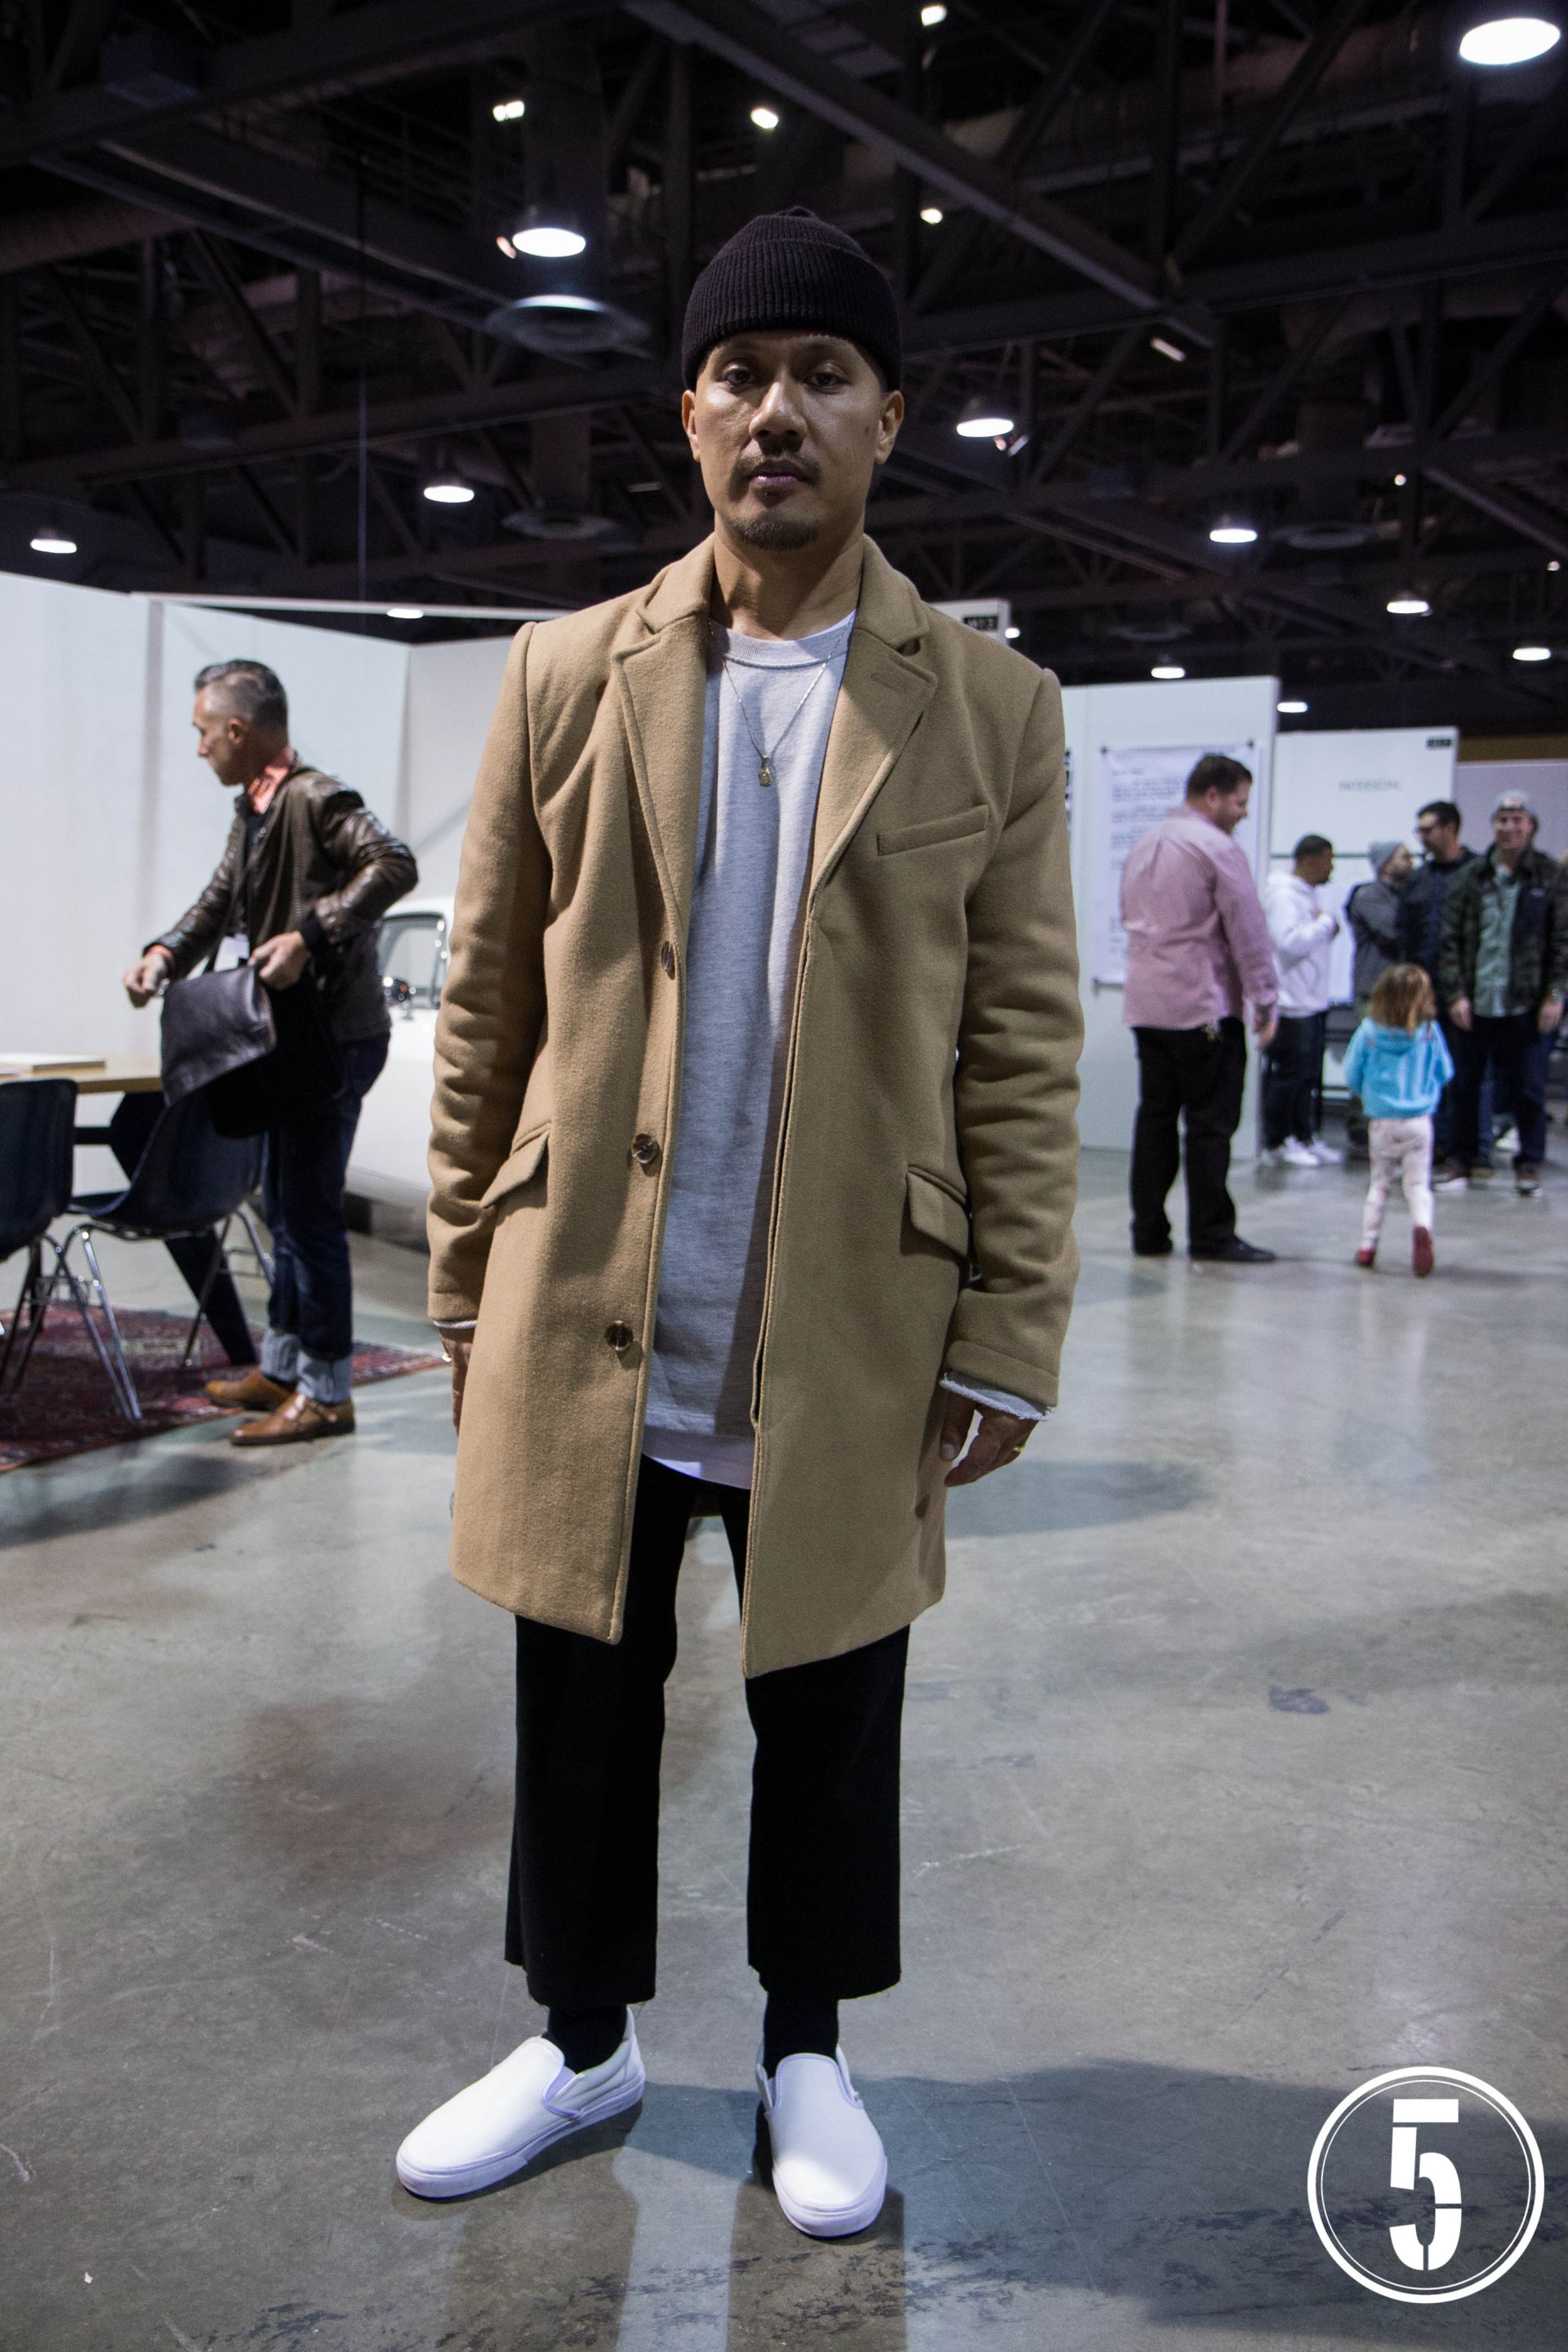 Street Style Shots: Agenda Long Beach, January 2016